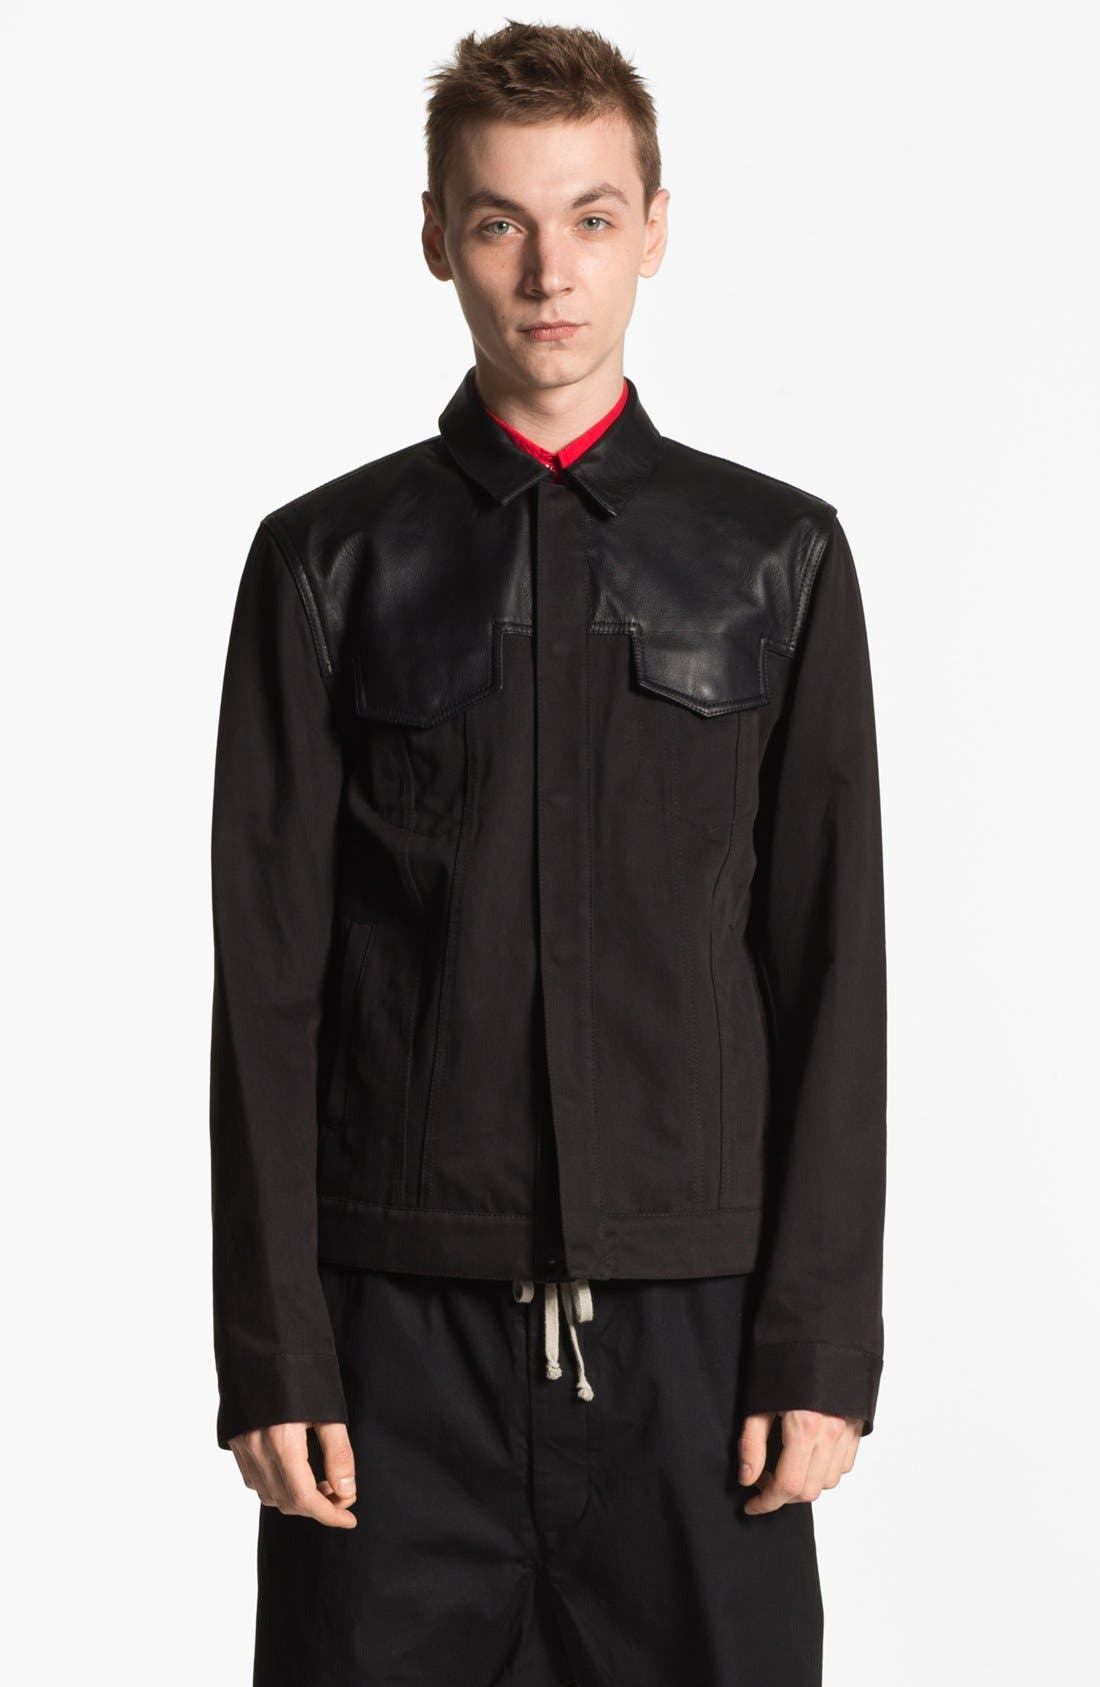 Main Image - T by Alexander Wang Cotton & Leather Bomber Jacket